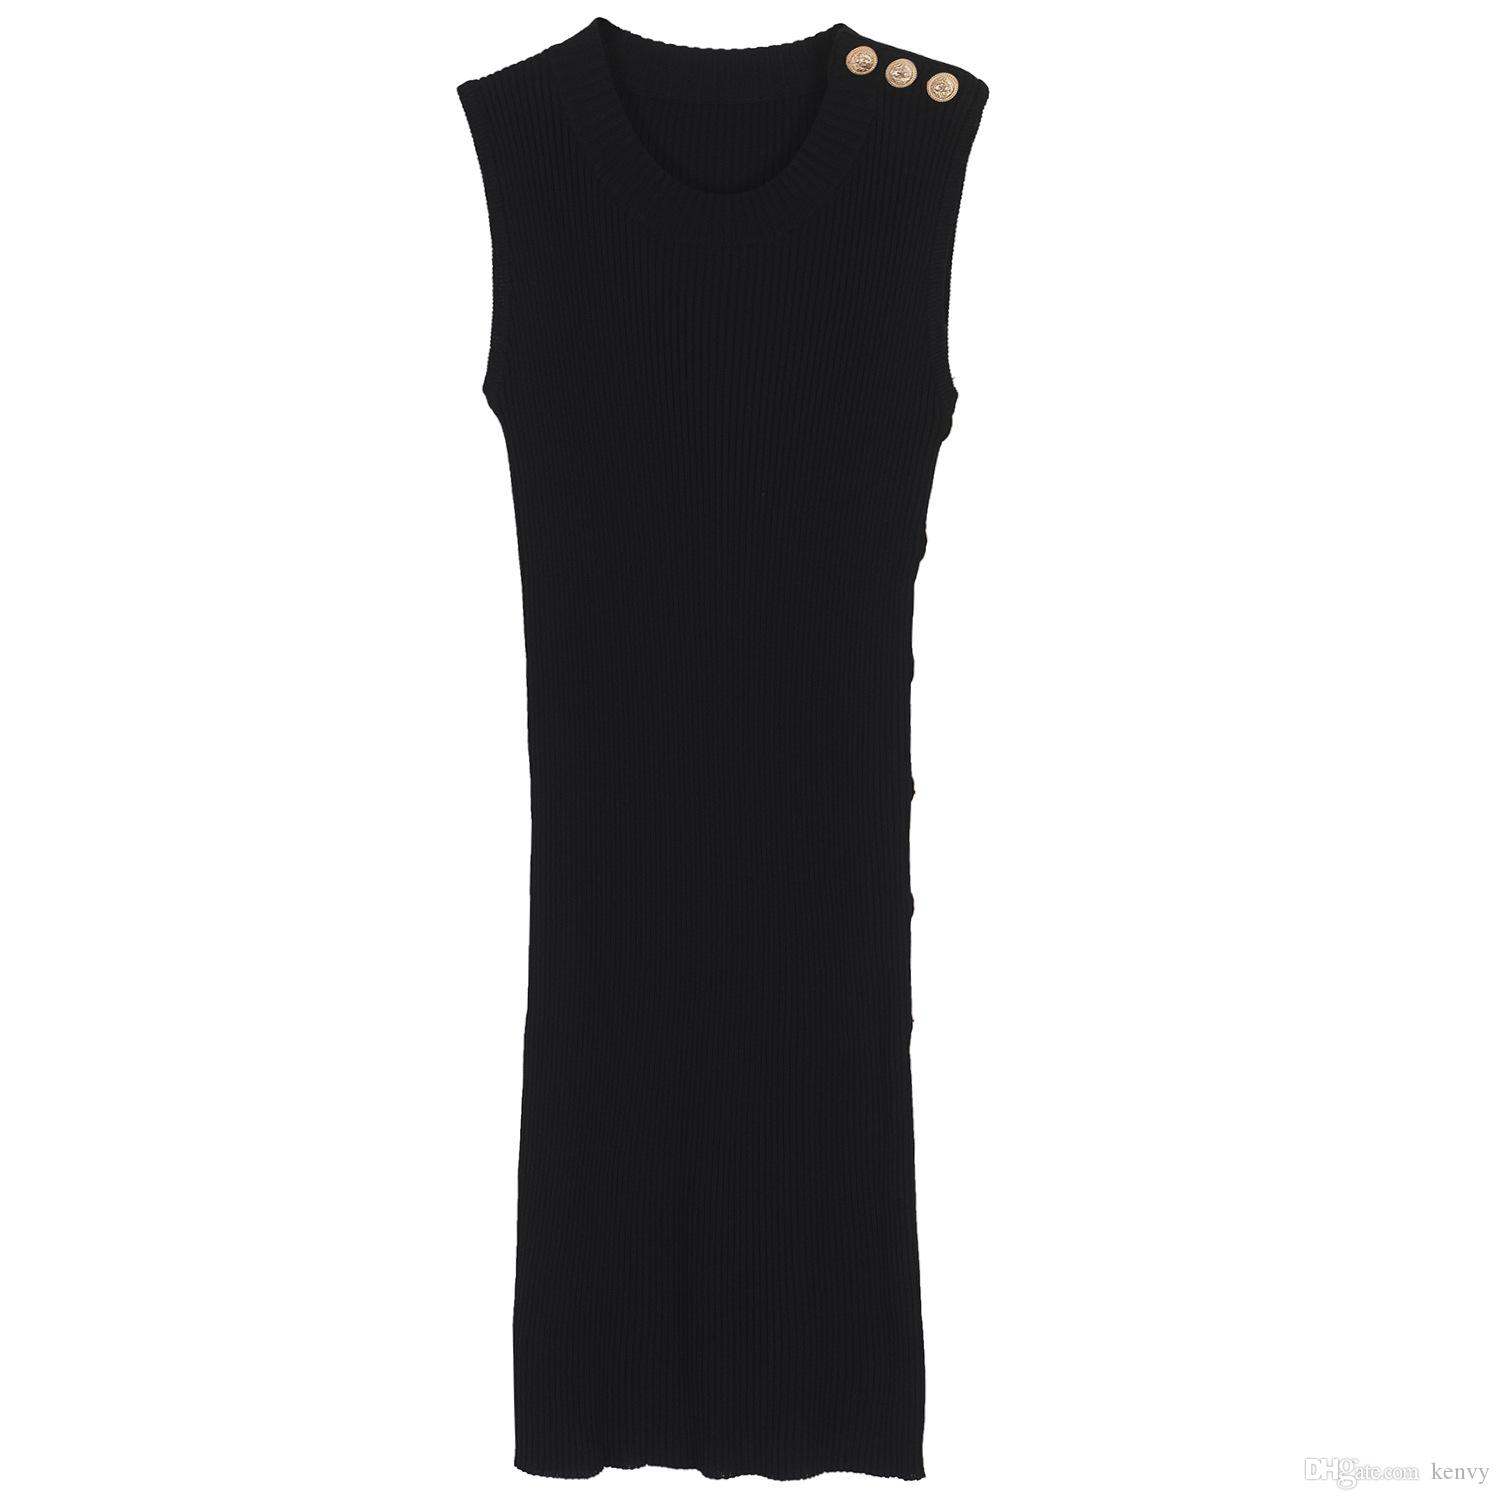 Brand fashion women's high-end luxury metal buckle decorated sleeveless knitted vest Slim black dress